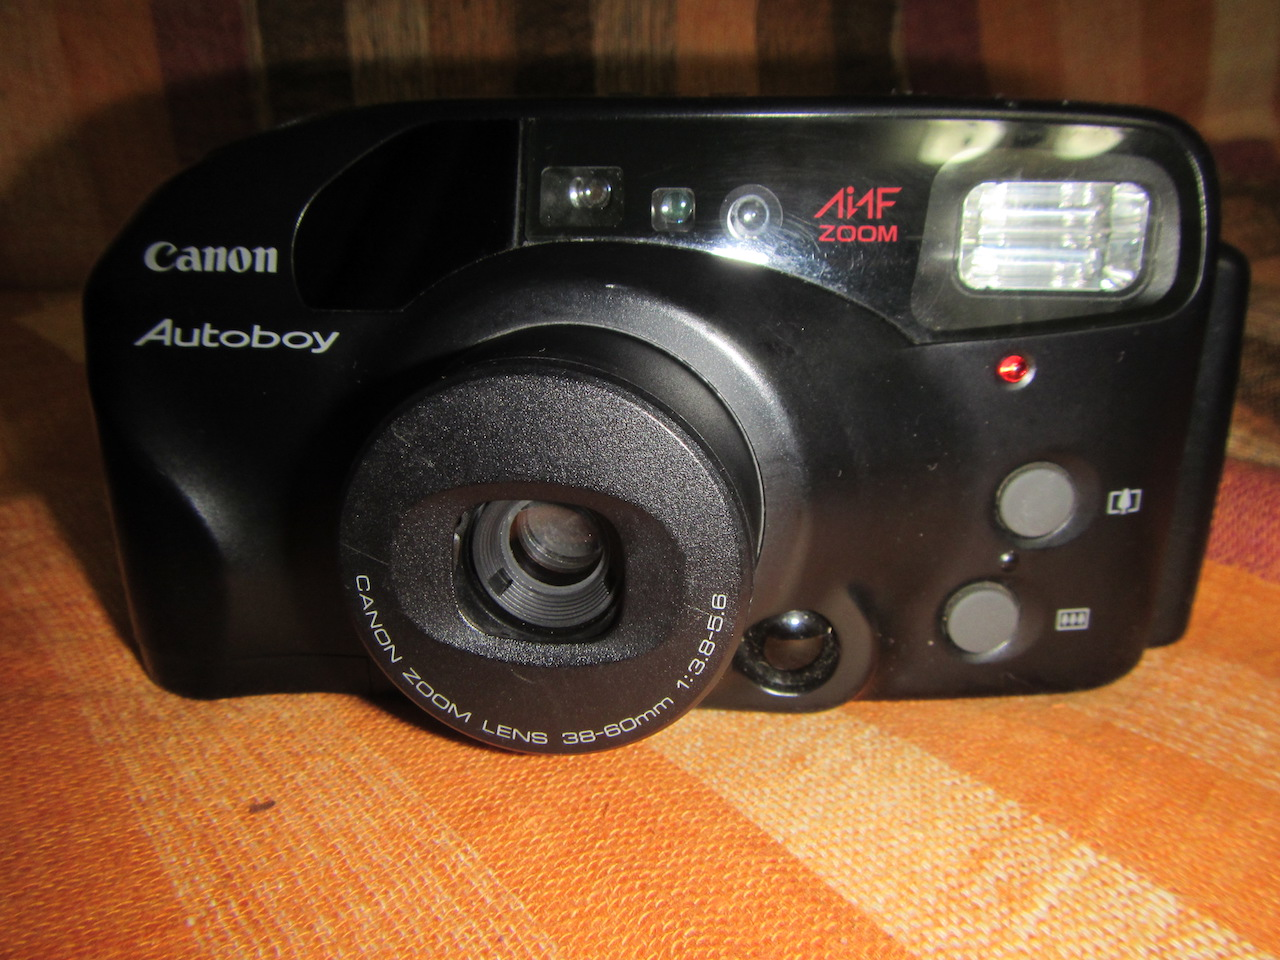 Canon Autoboy or Sureshot